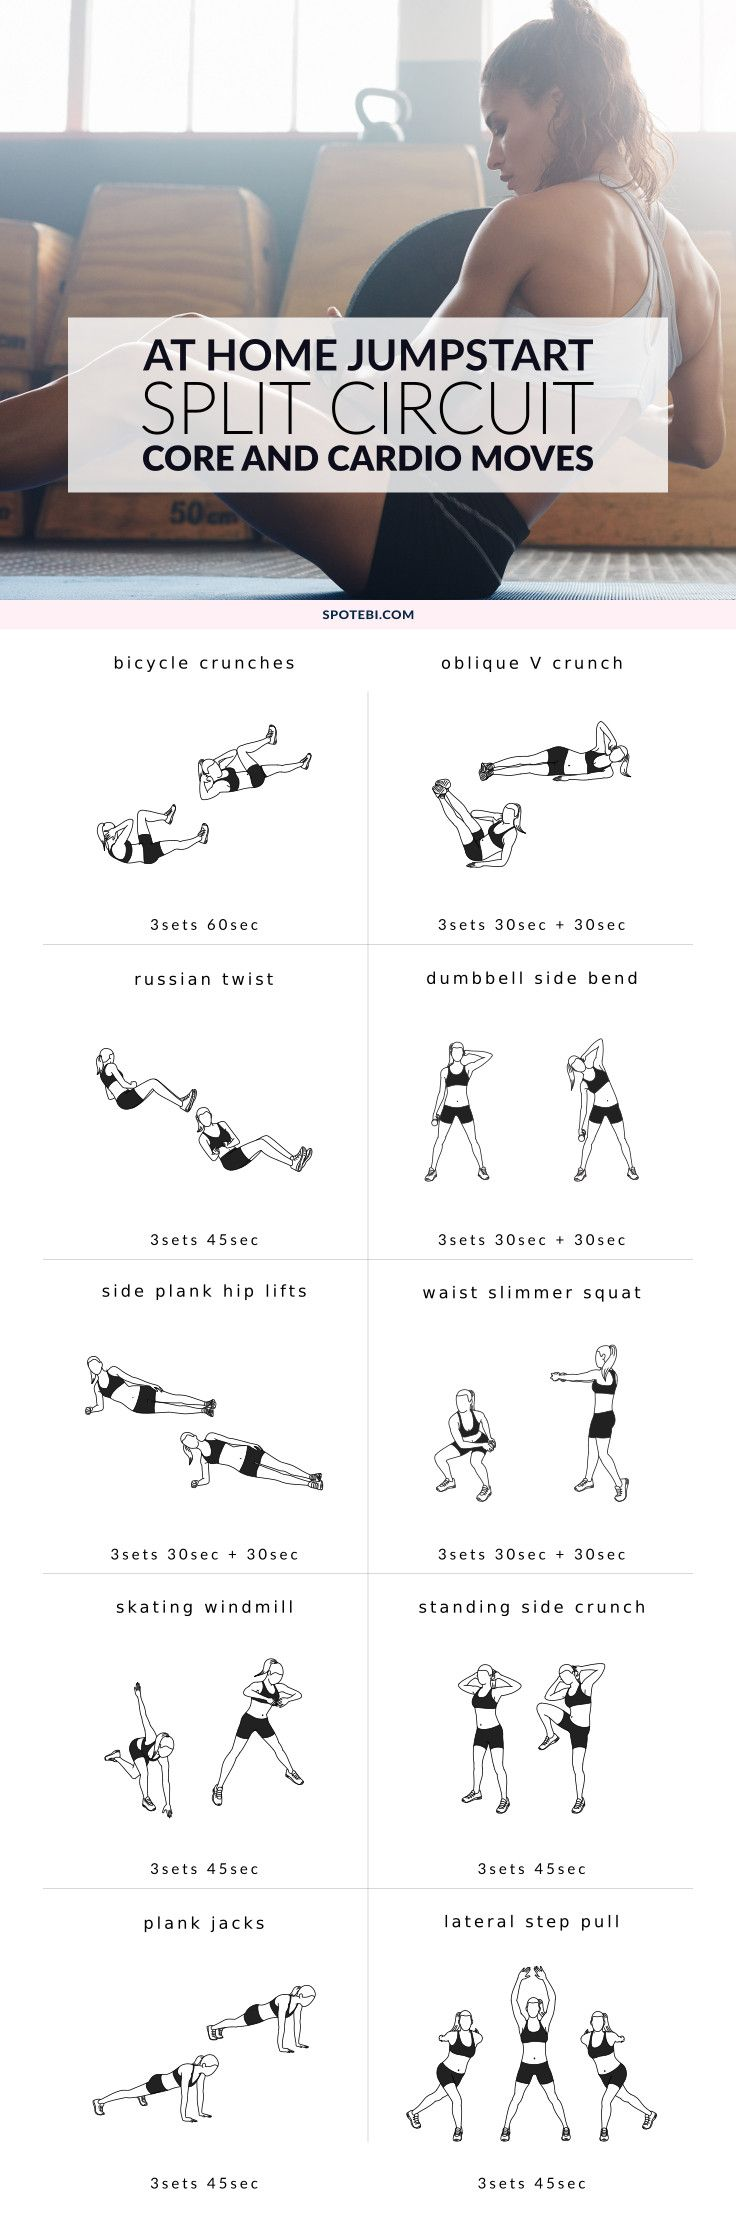 Work your abs, obliques, and the transverse abdominals to slim down your waist and sculpt a tight, toned tummy. This core and cardio split circuit will help burn off your belly fat for up to 48 hours after the workout is over! https://www.spotebi.com/workout-routines/core-cardio-split-workout/